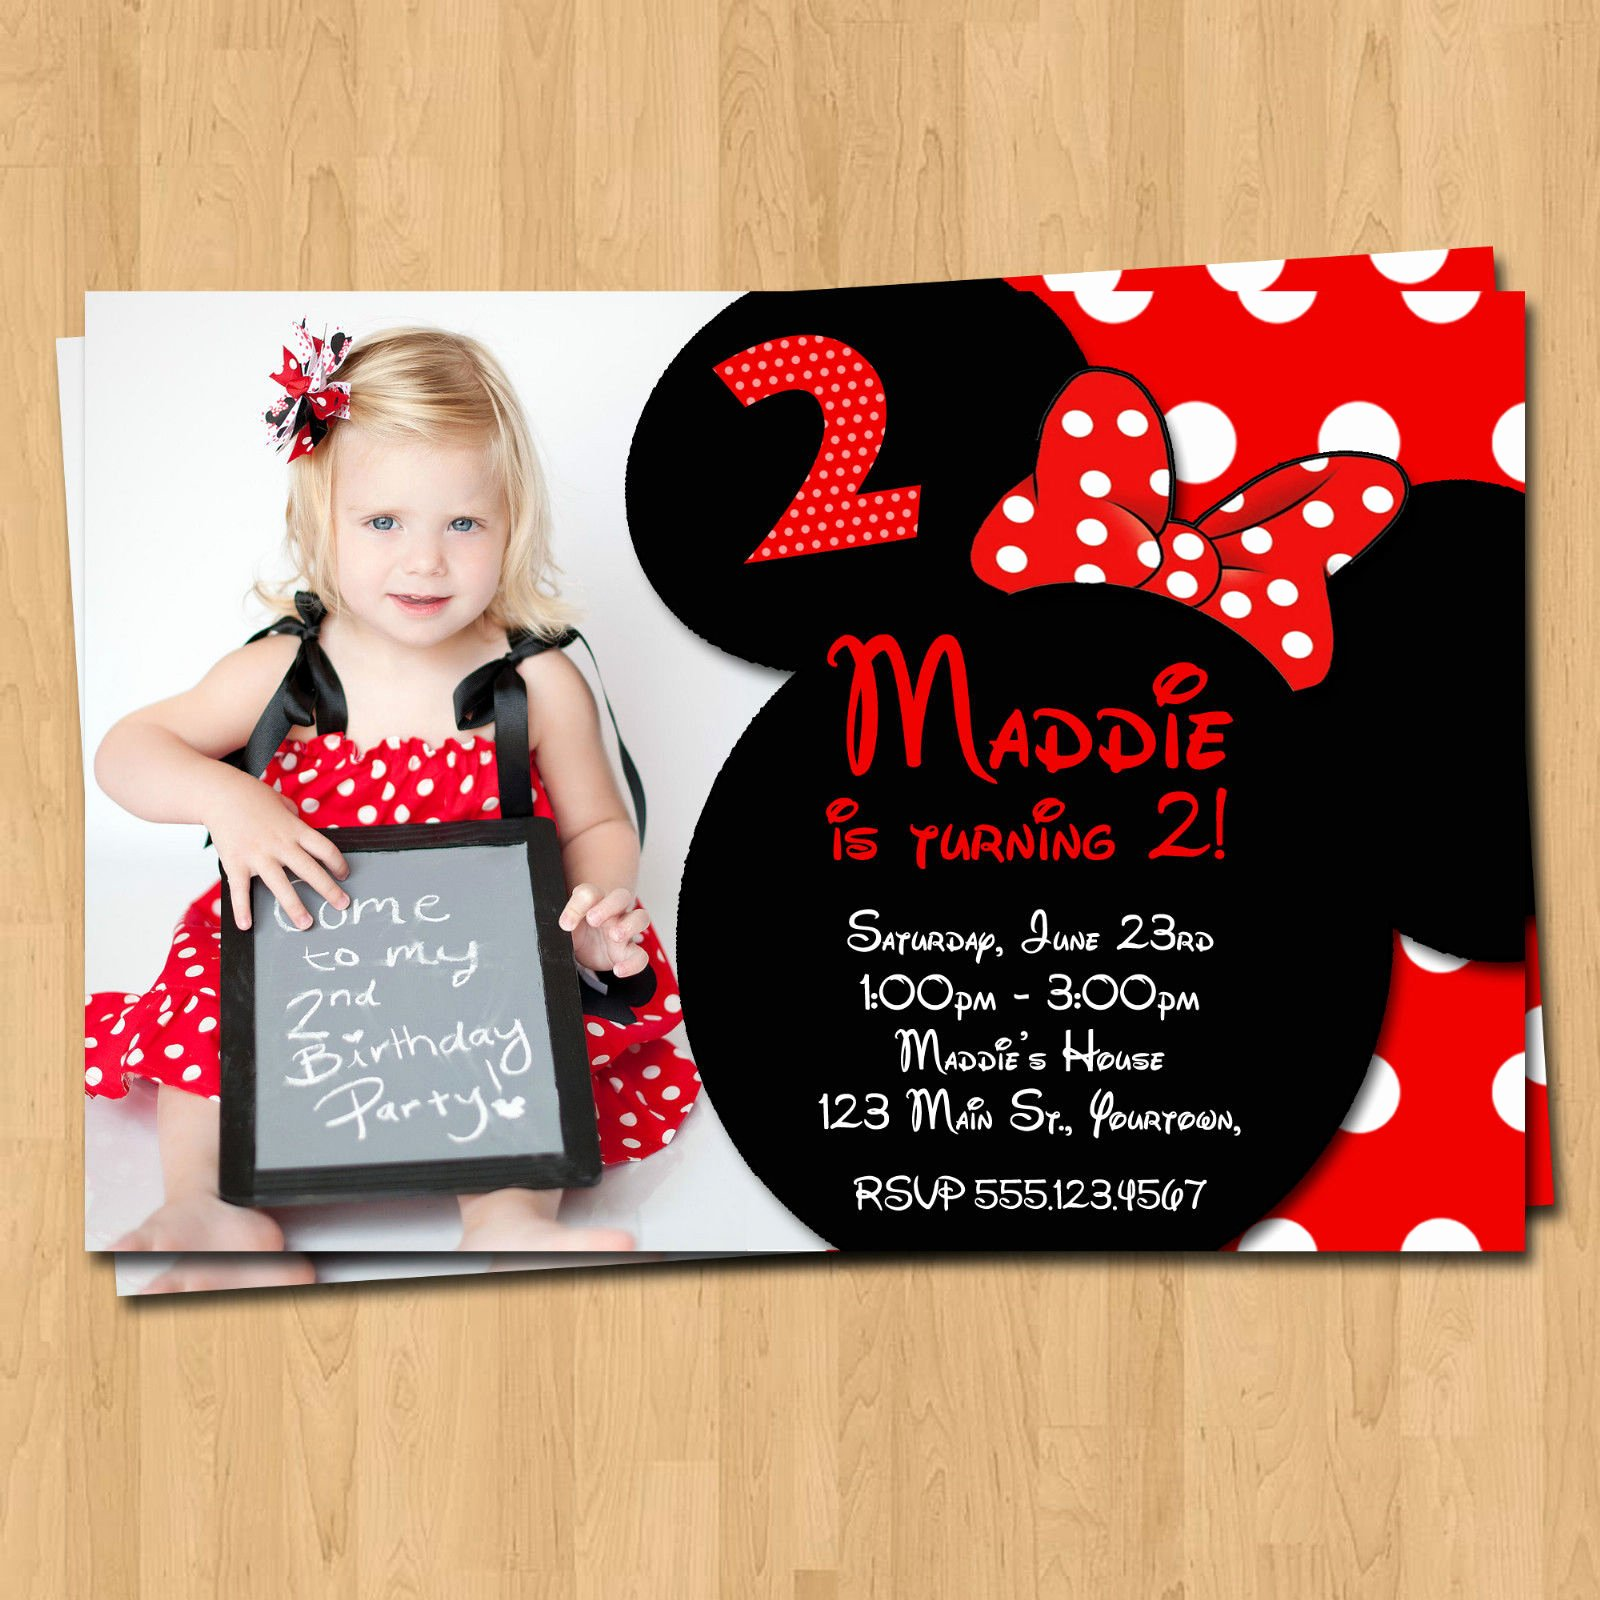 Minnie Mouse Party Invitations Lovely Free Printable Minnie Mouse Birthday Party Invitations